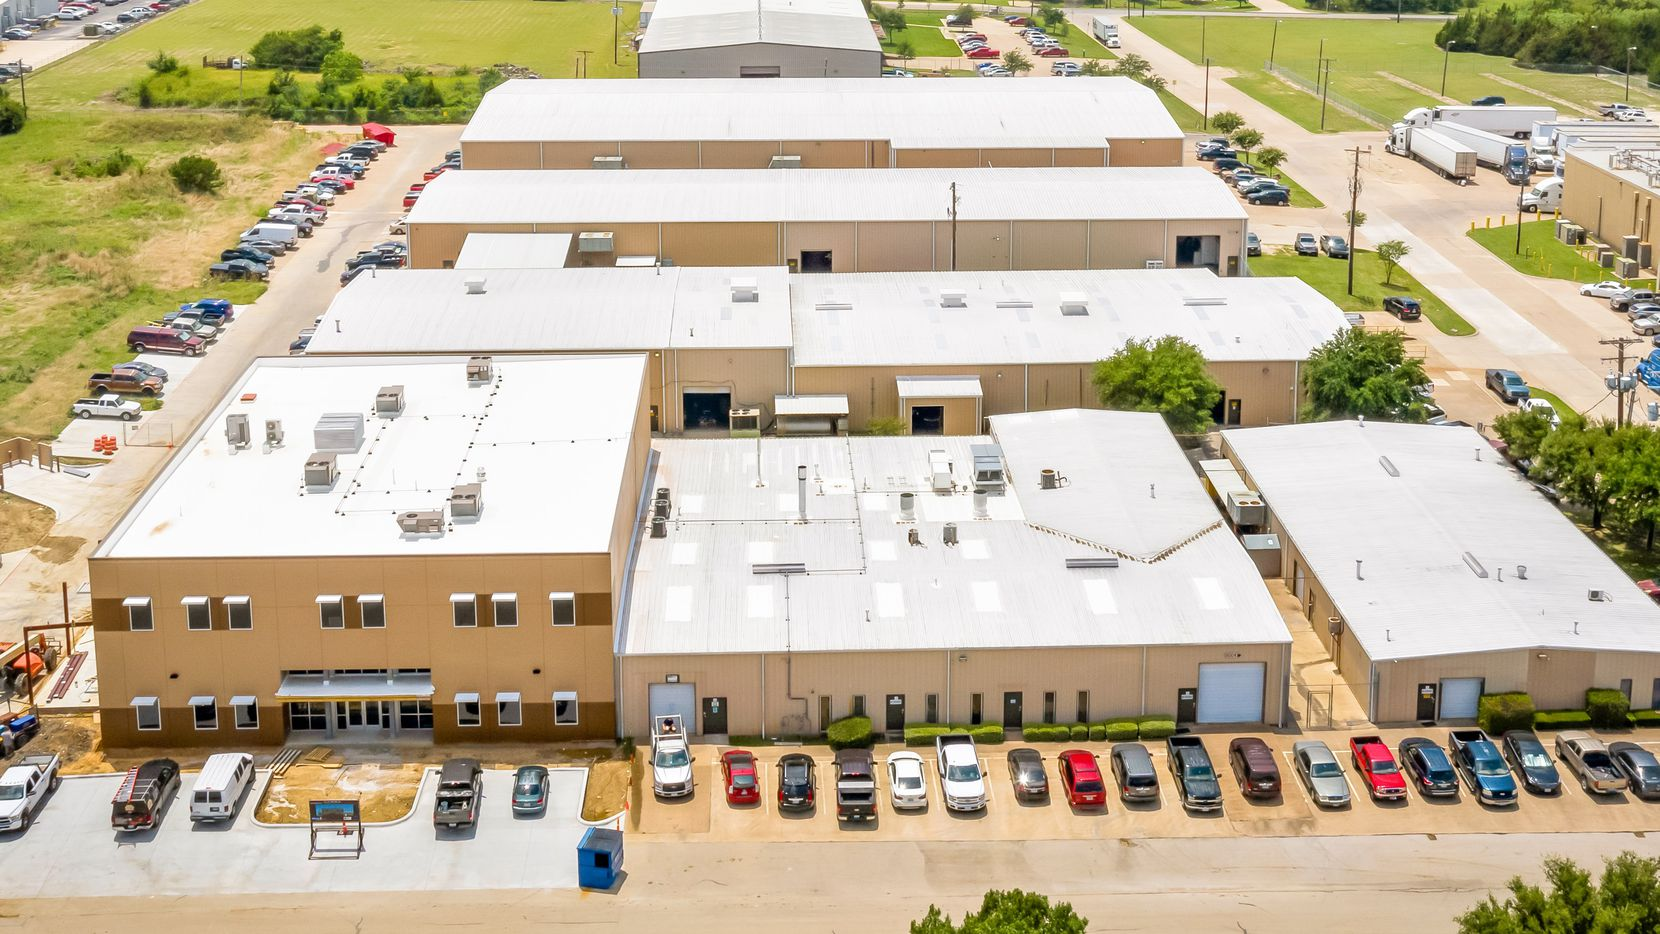 MAG Capital Partners LLC has sold an industrial manufacturing and headquarters complex located at 601 Airport Drive in Mansfield.